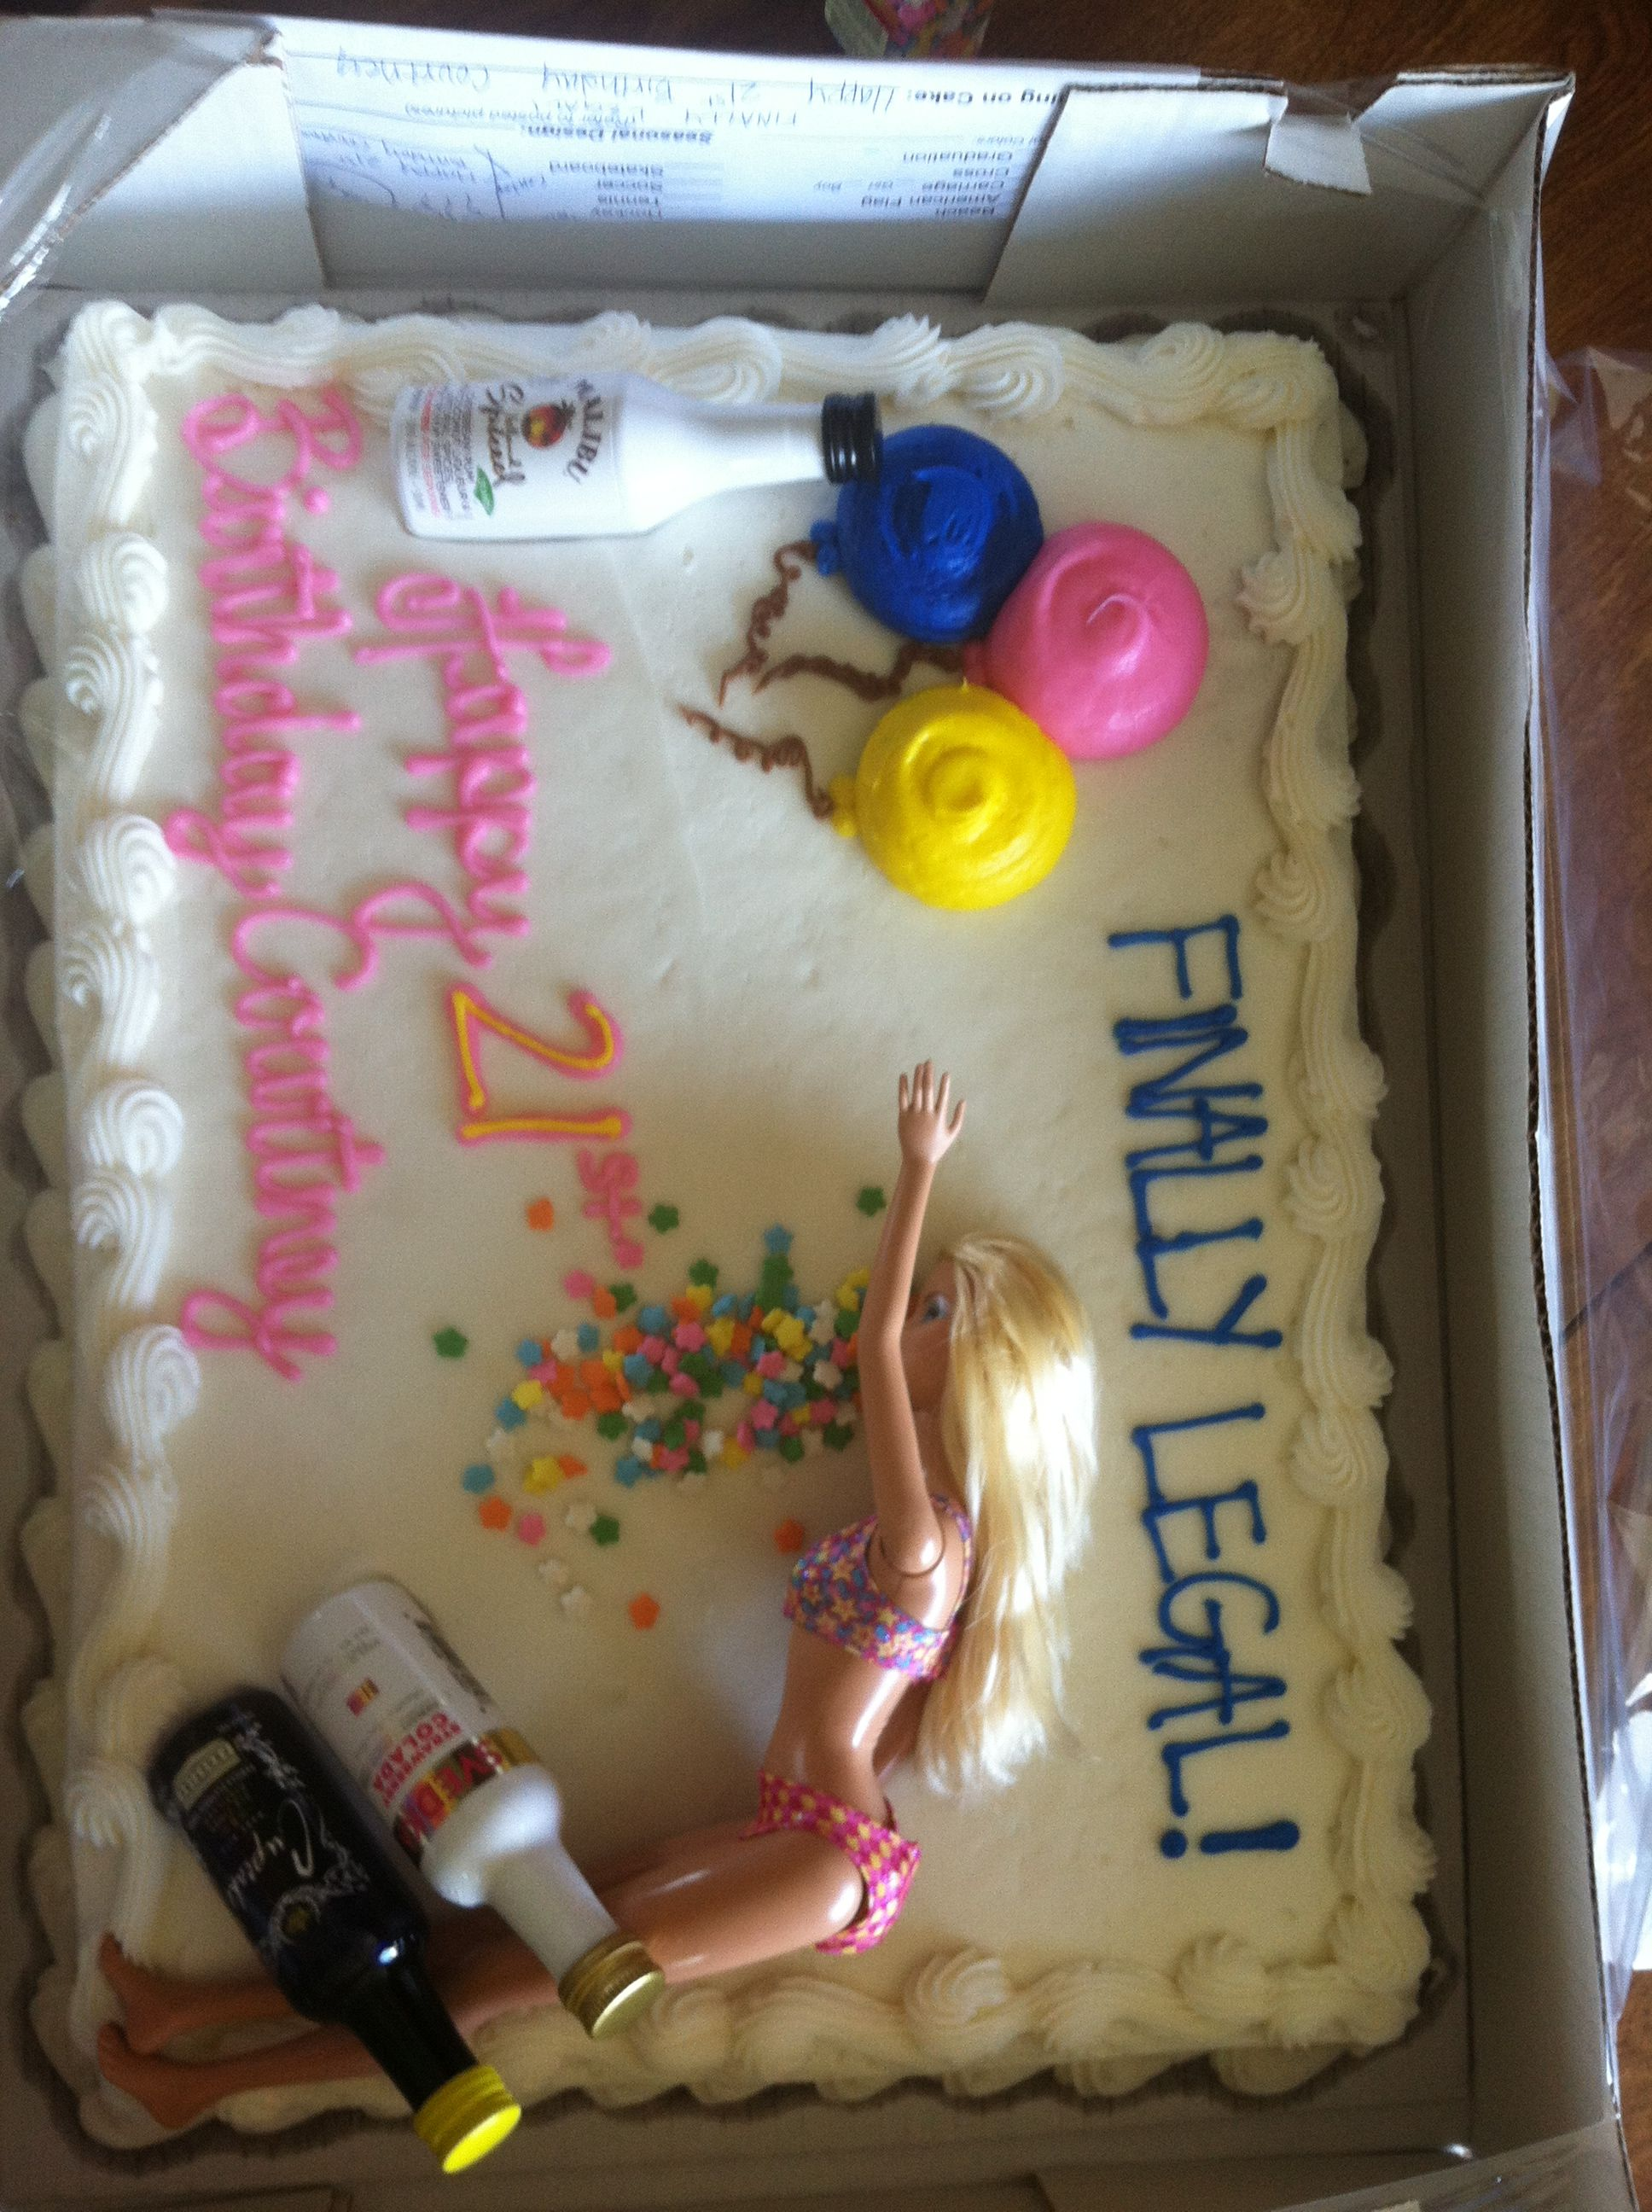 Drunk Barbie Cake For Soon To Be Sister In Laws 21st Bday